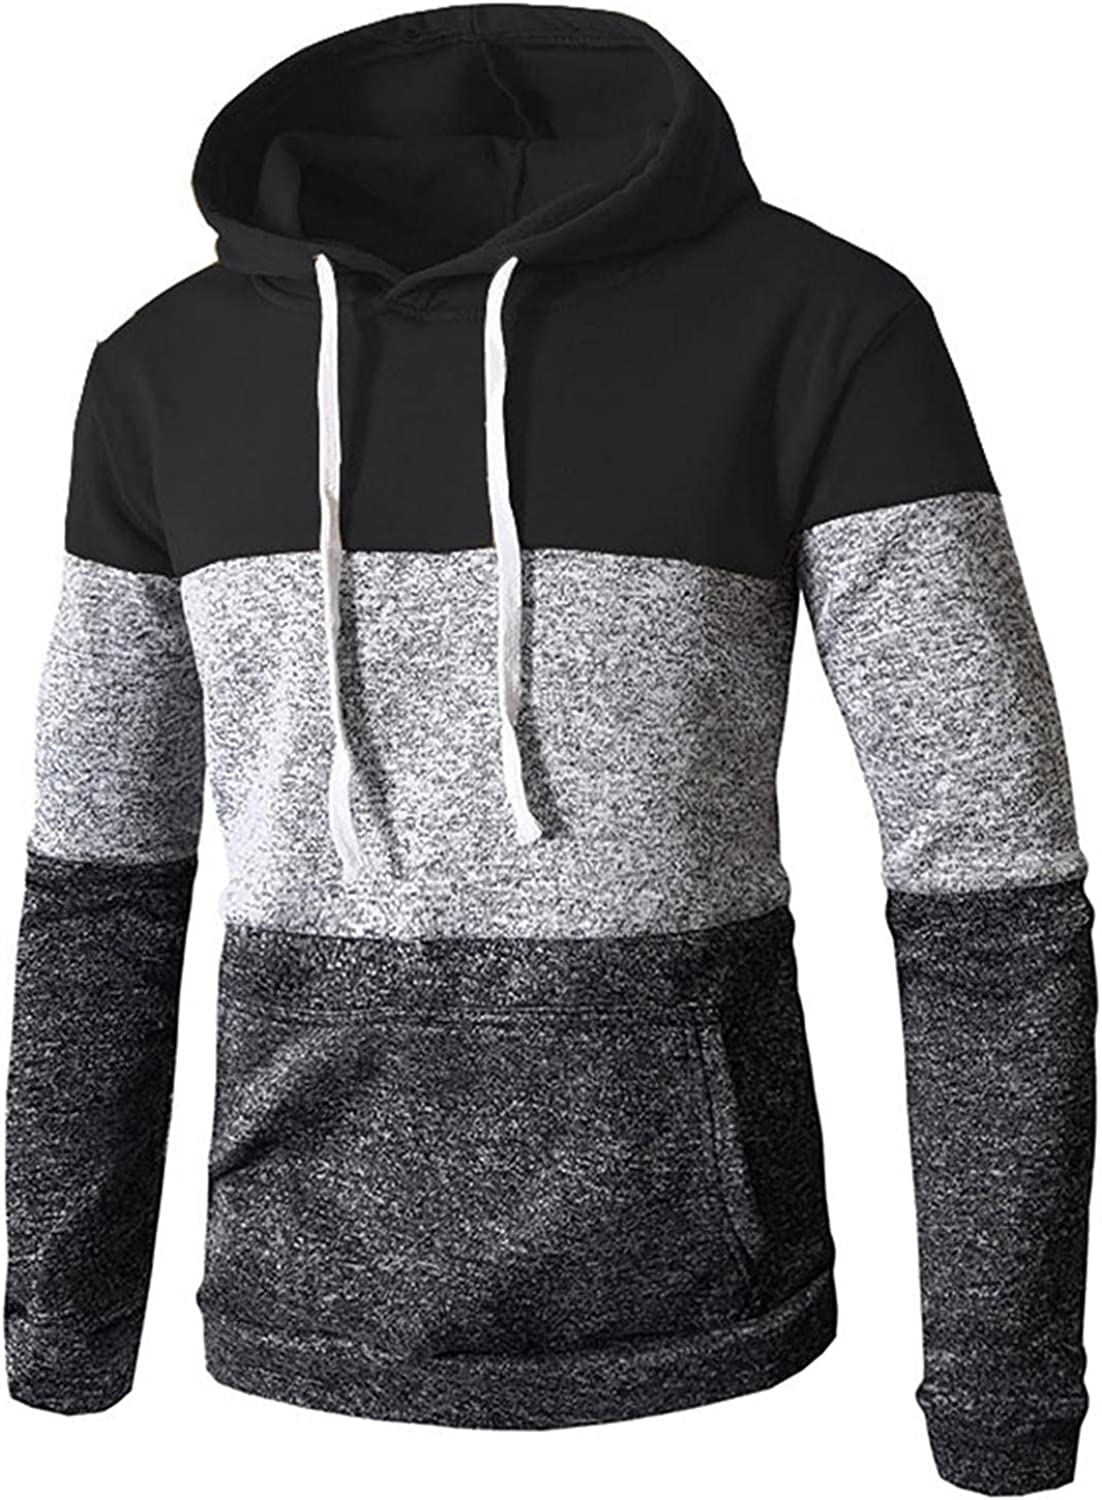 Men's Hoodies Pullover, Men's Hipster Hip Hop Hoodie Spliced Colorblock Casual Long Sleeve Warm Sweat Shirts Pockets